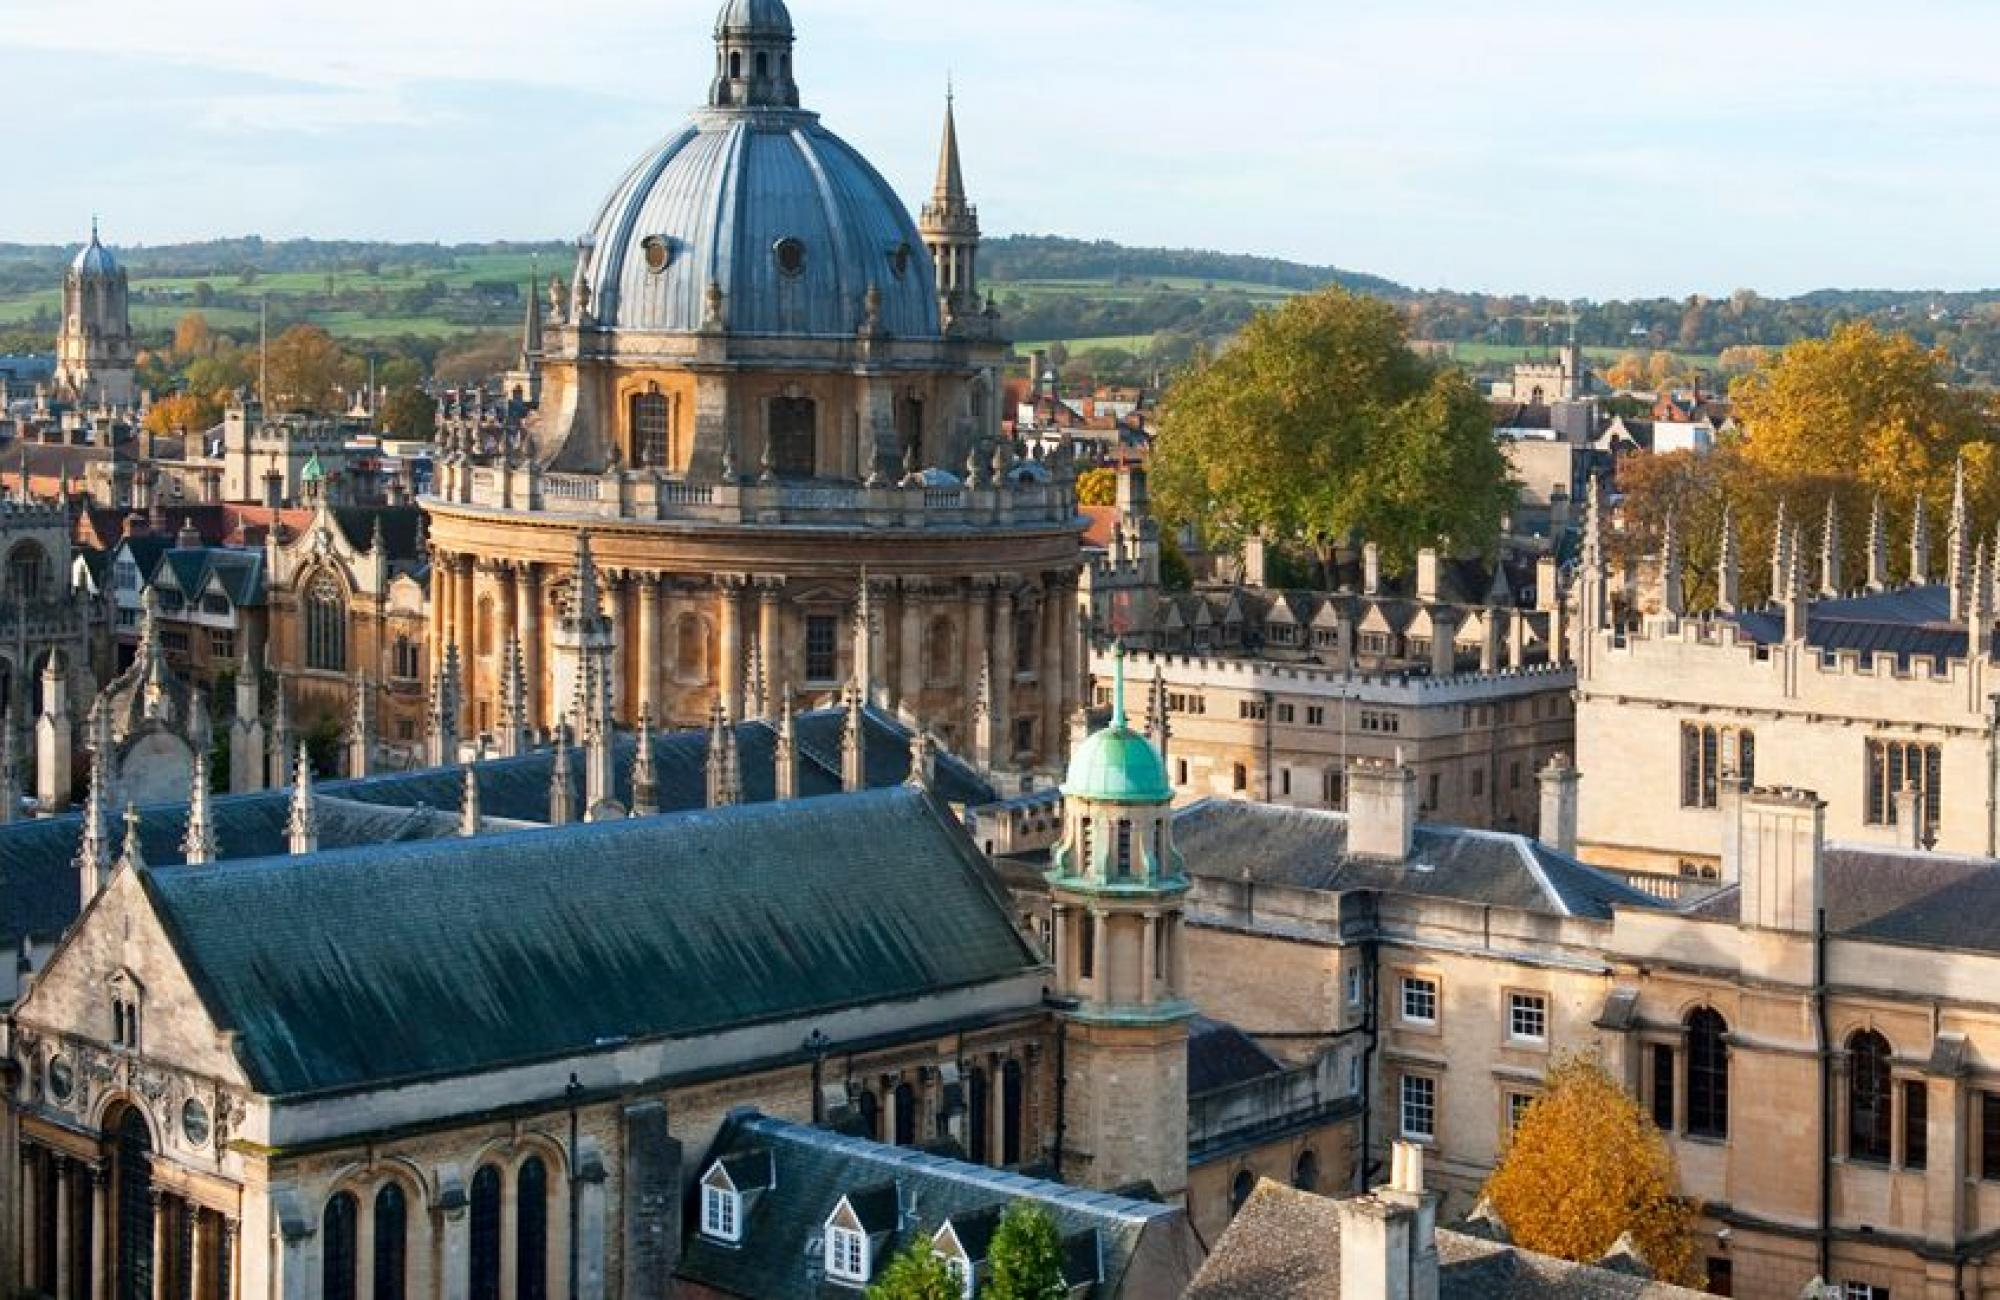 Mind & Behaviour Research Group is housed at the University of Oxford